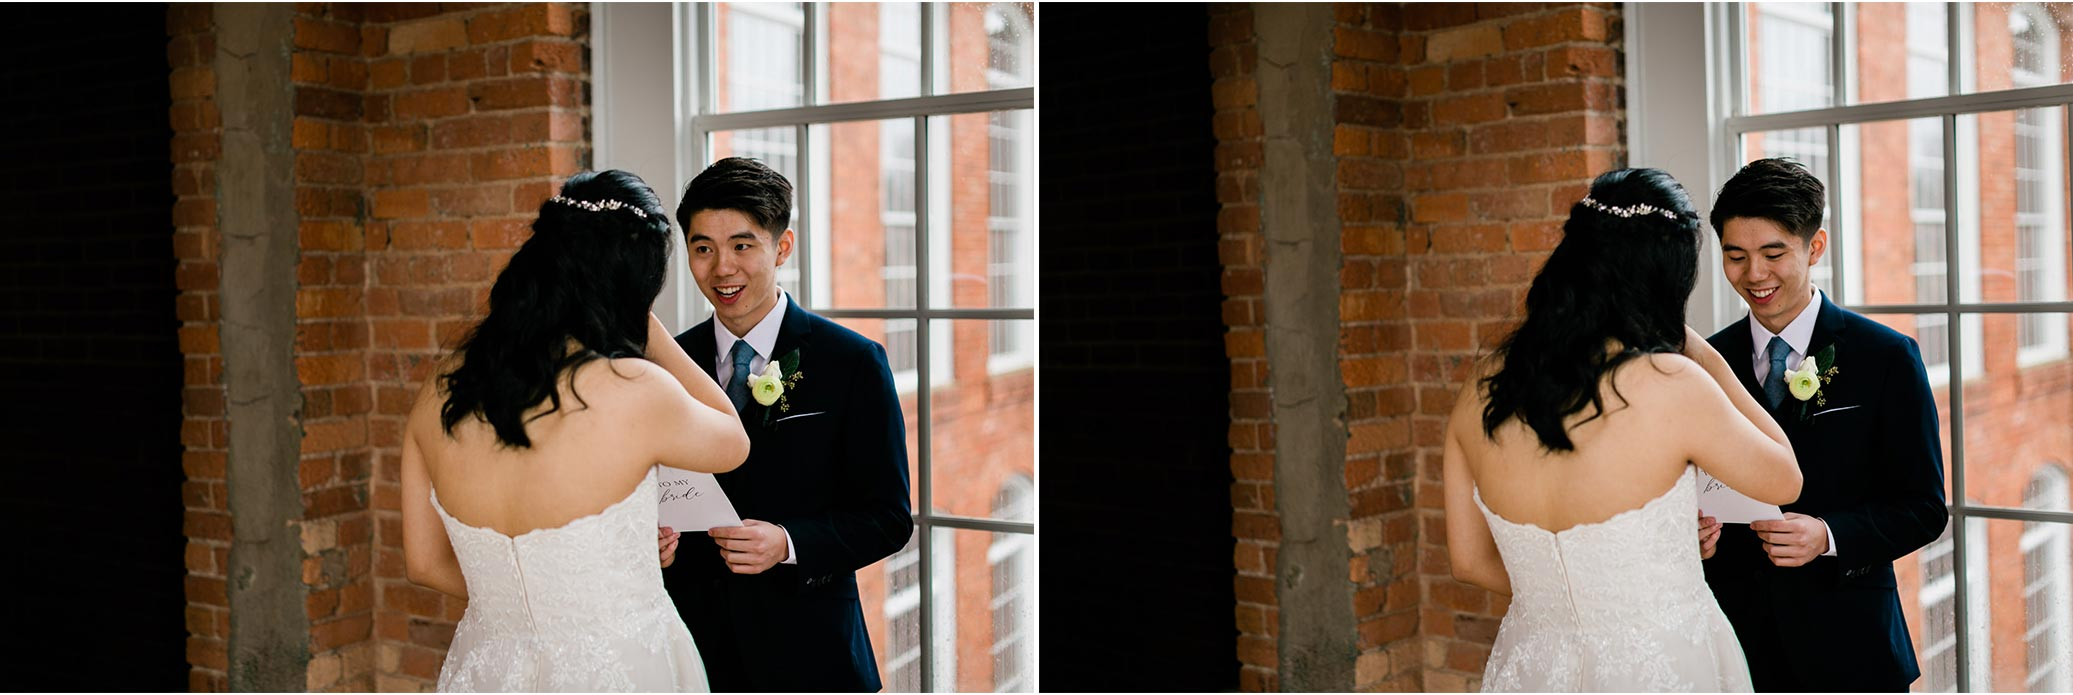 Groom reading letter to bride at The Cotton Room | Durham Wedding Photographer | By G. Lin Photography